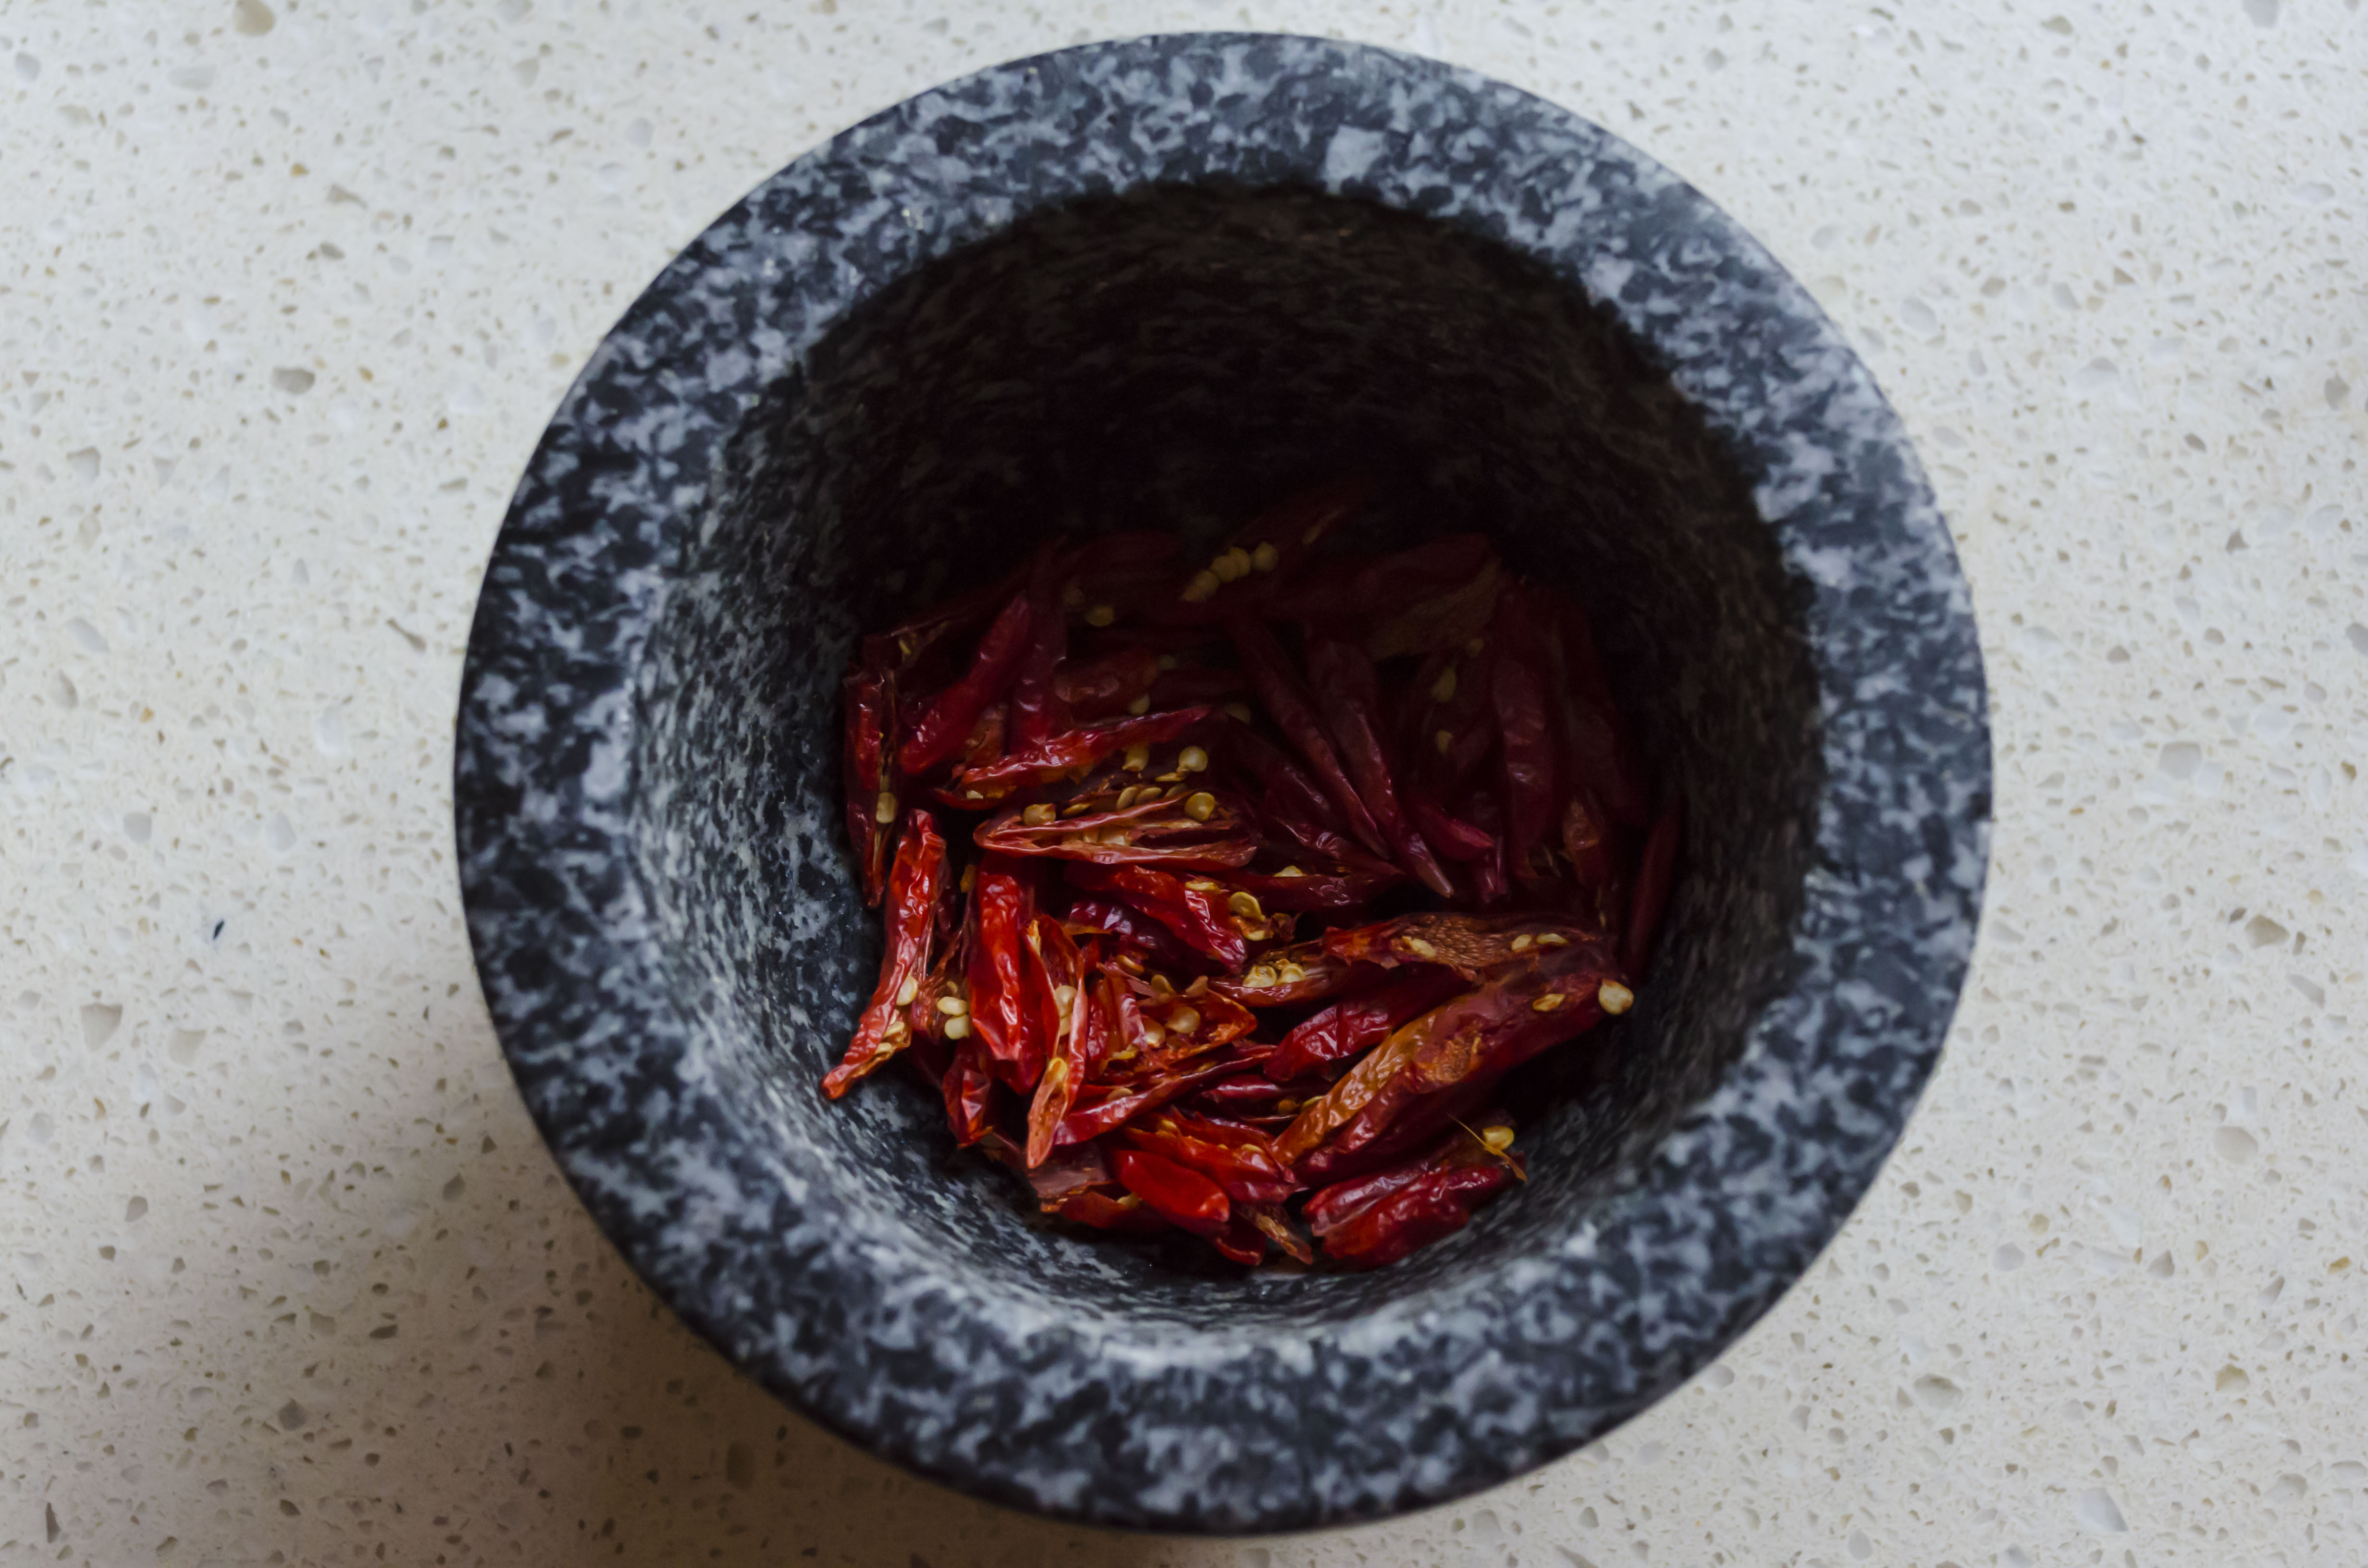 World's worst food blogger, chili salt, chili, chilli, mortar and pestle